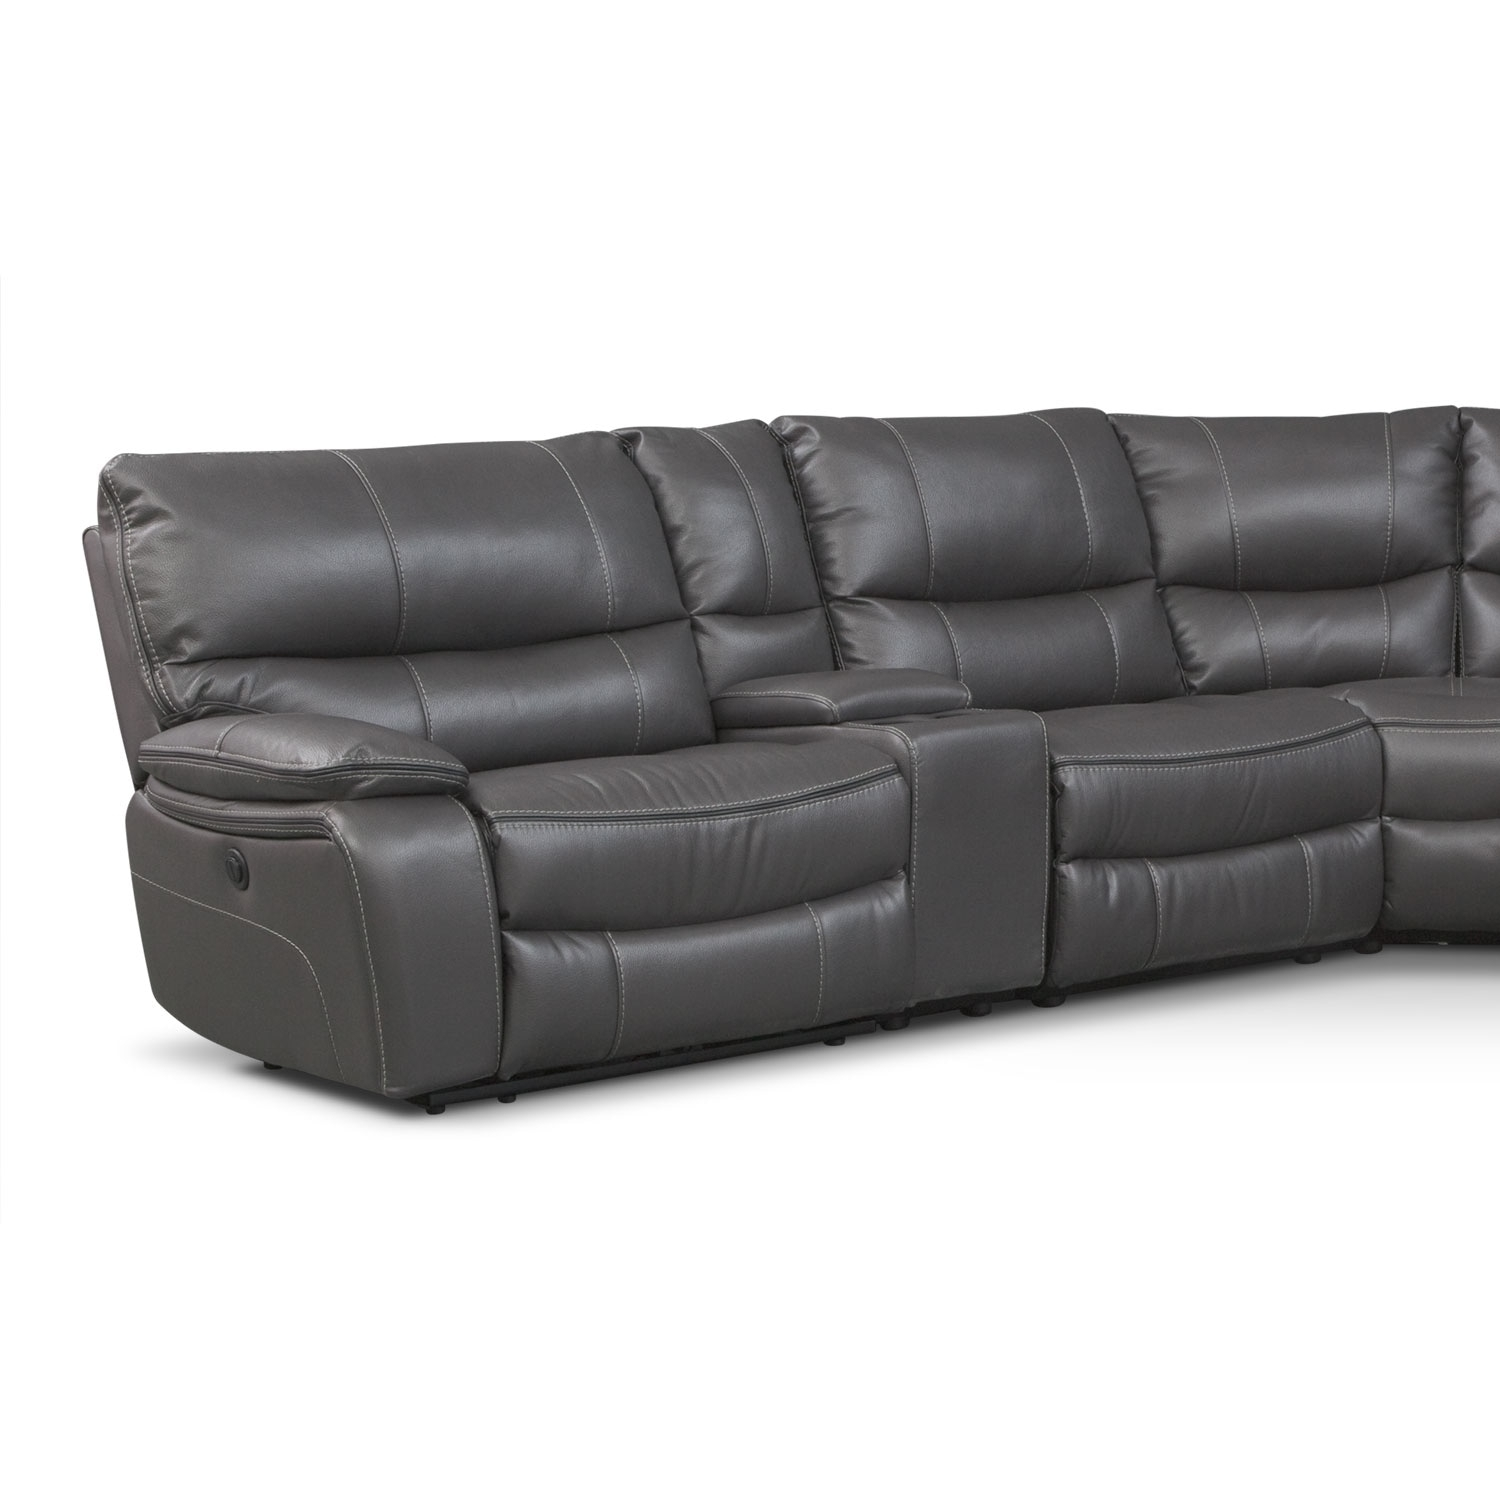 Orlando 6 Piece Power Reclining Sectional With 1 Stationary Chair Pertaining To Kristen Silver Grey 6 Piece Power Reclining Sectionals (Image 15 of 25)